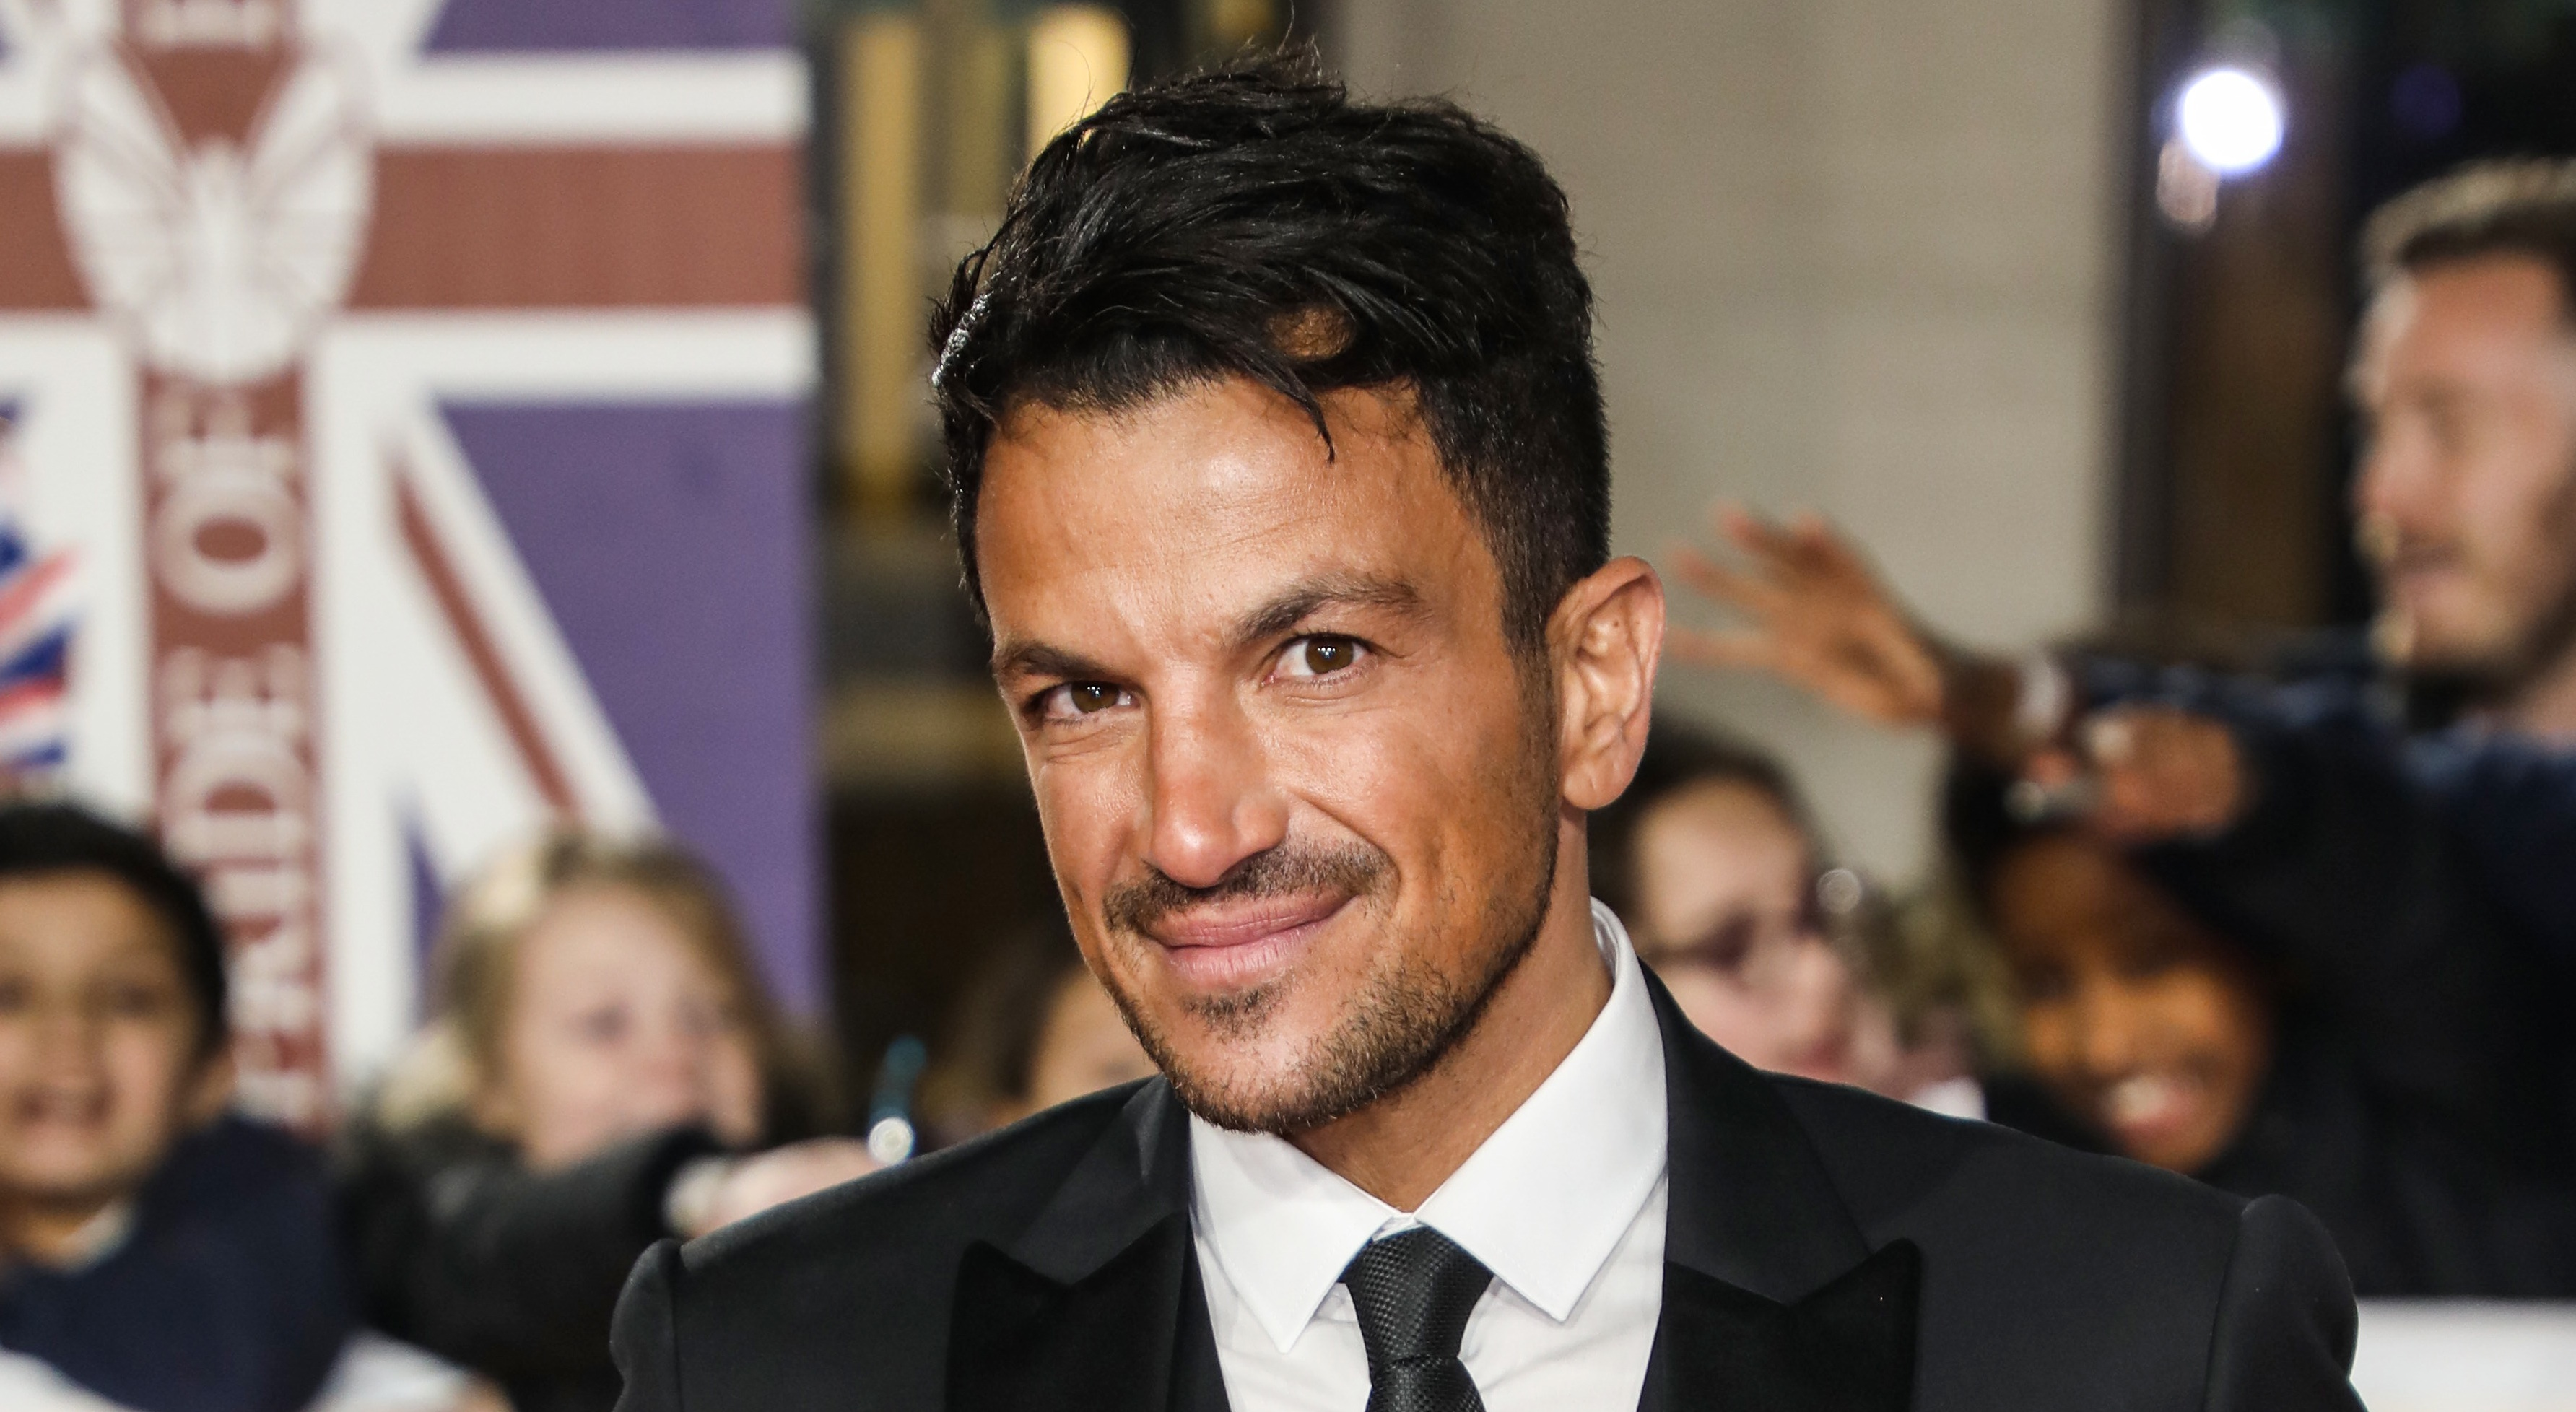 Peter Andre's fans in stitches as he reveals his ridiculous baking fail on Instagram